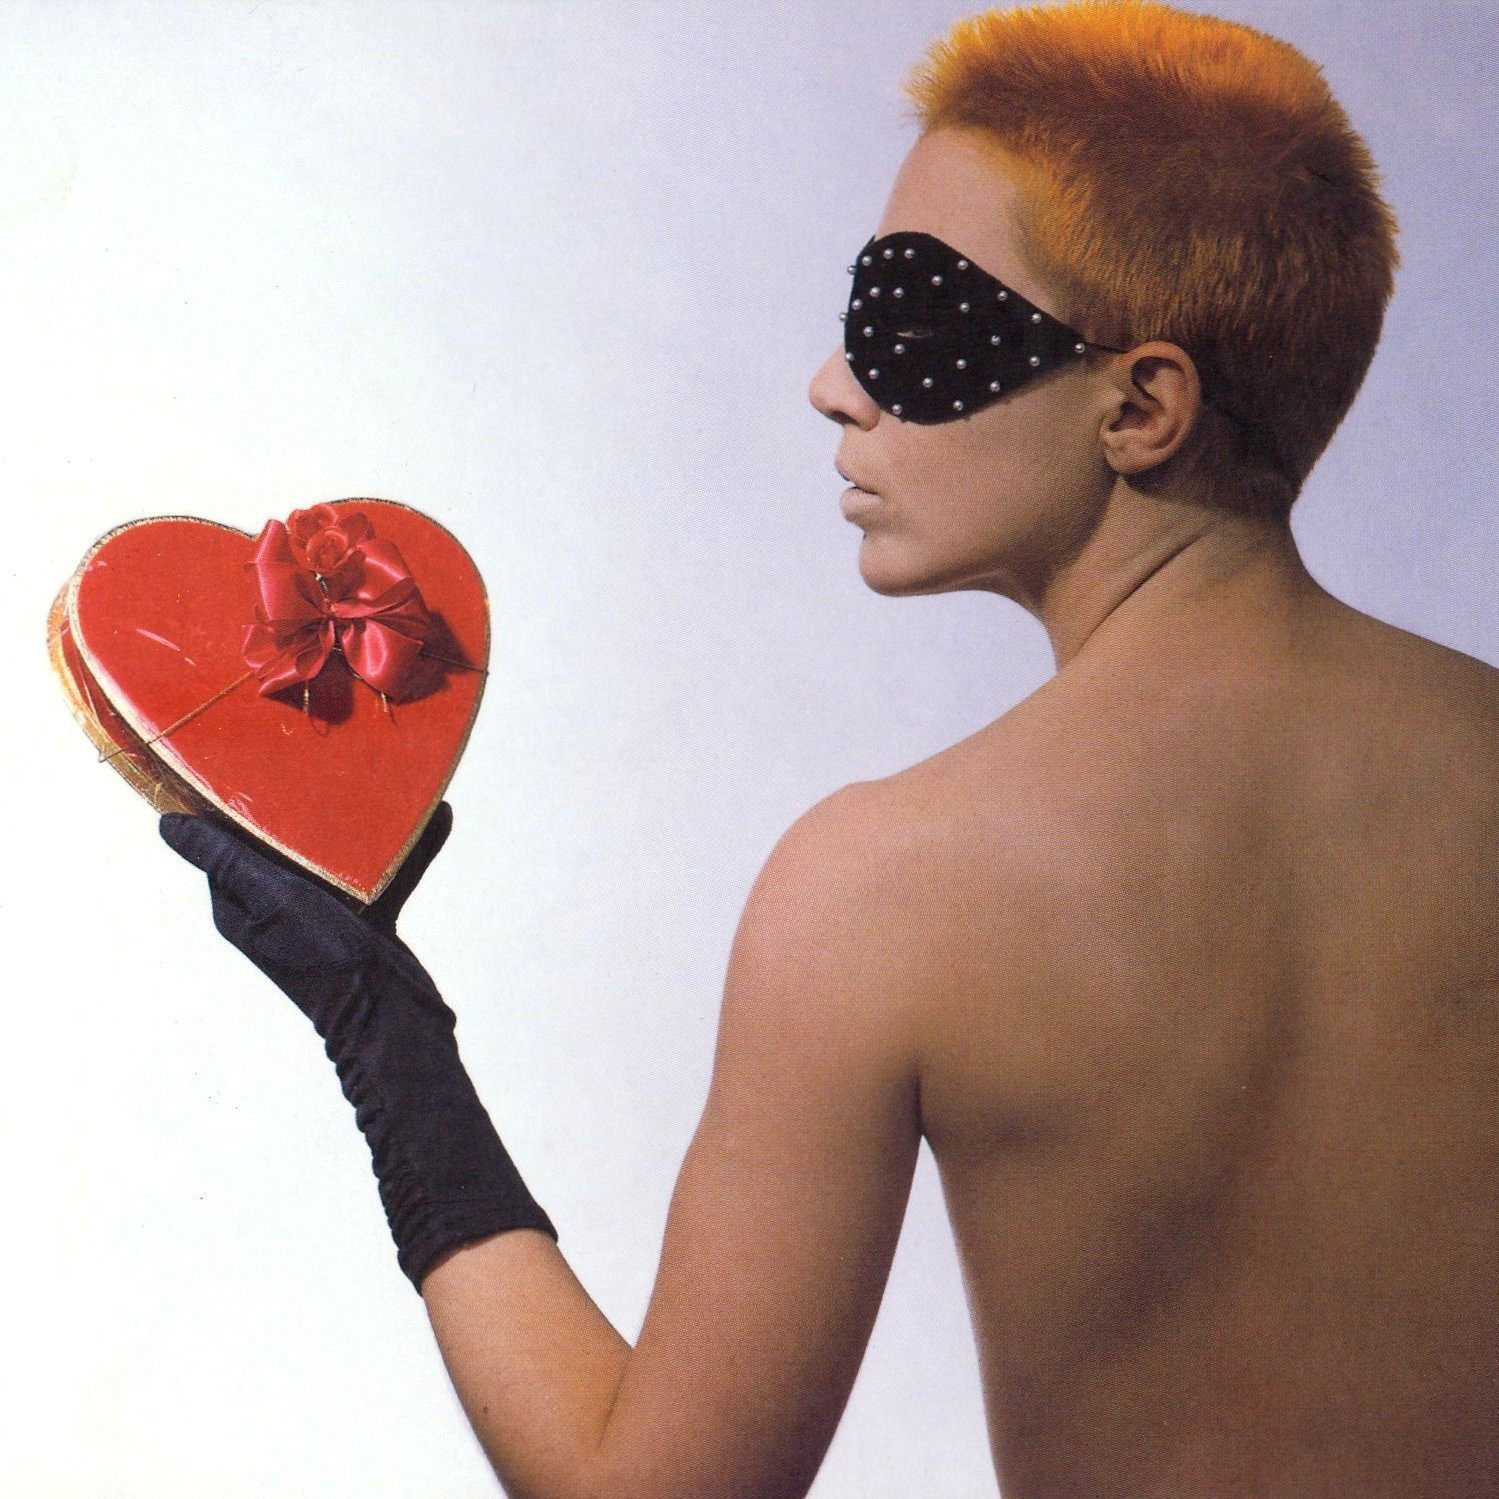 Gallery Eurythmics Albums Sweet Dreams 01 20 Sweet Facts About Pop Icons Eurythmics